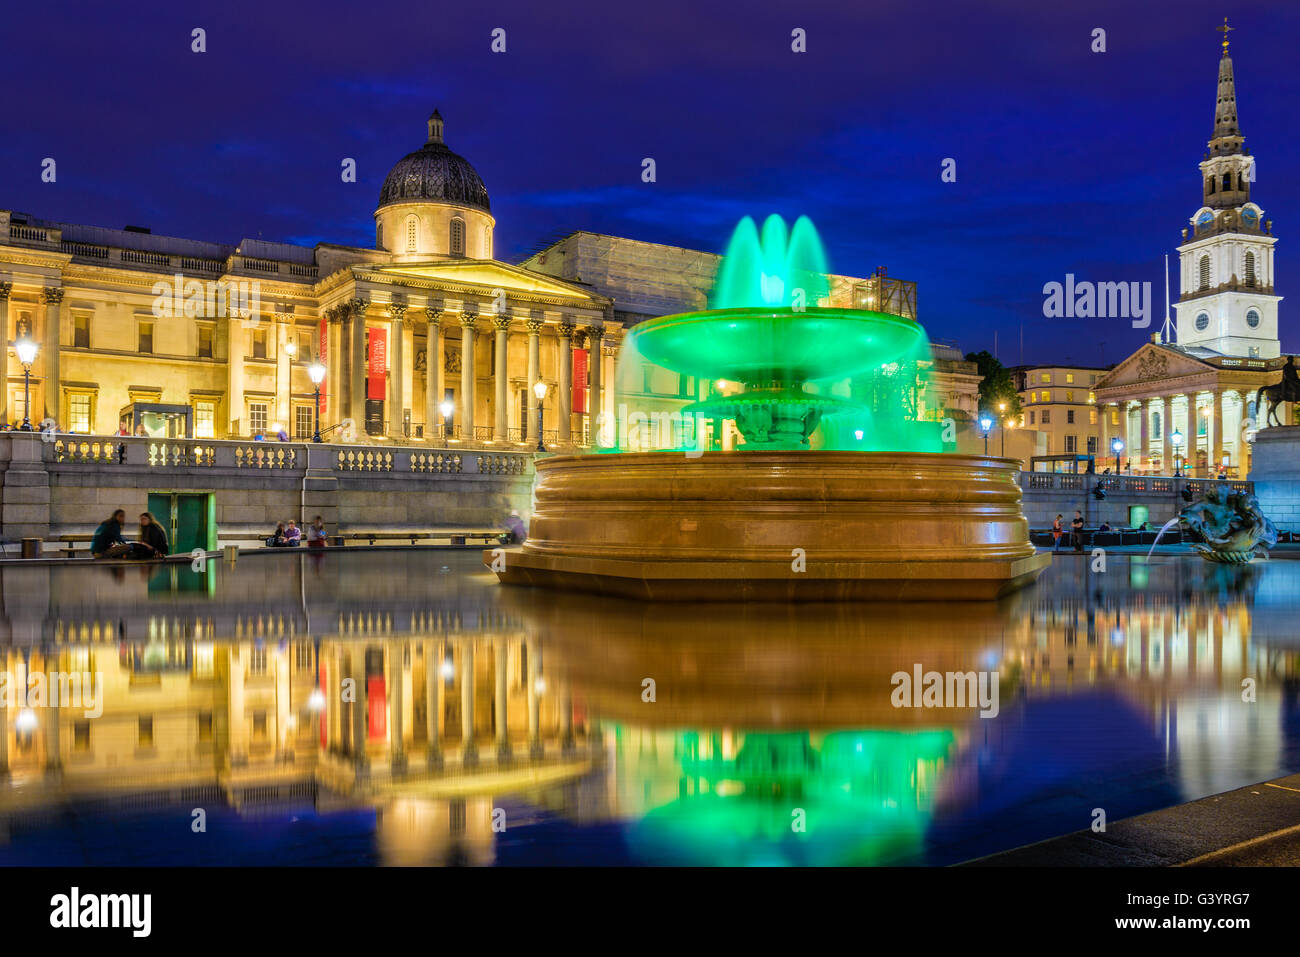 The National Gallery and Trafalgar Square at night in London - Stock Image